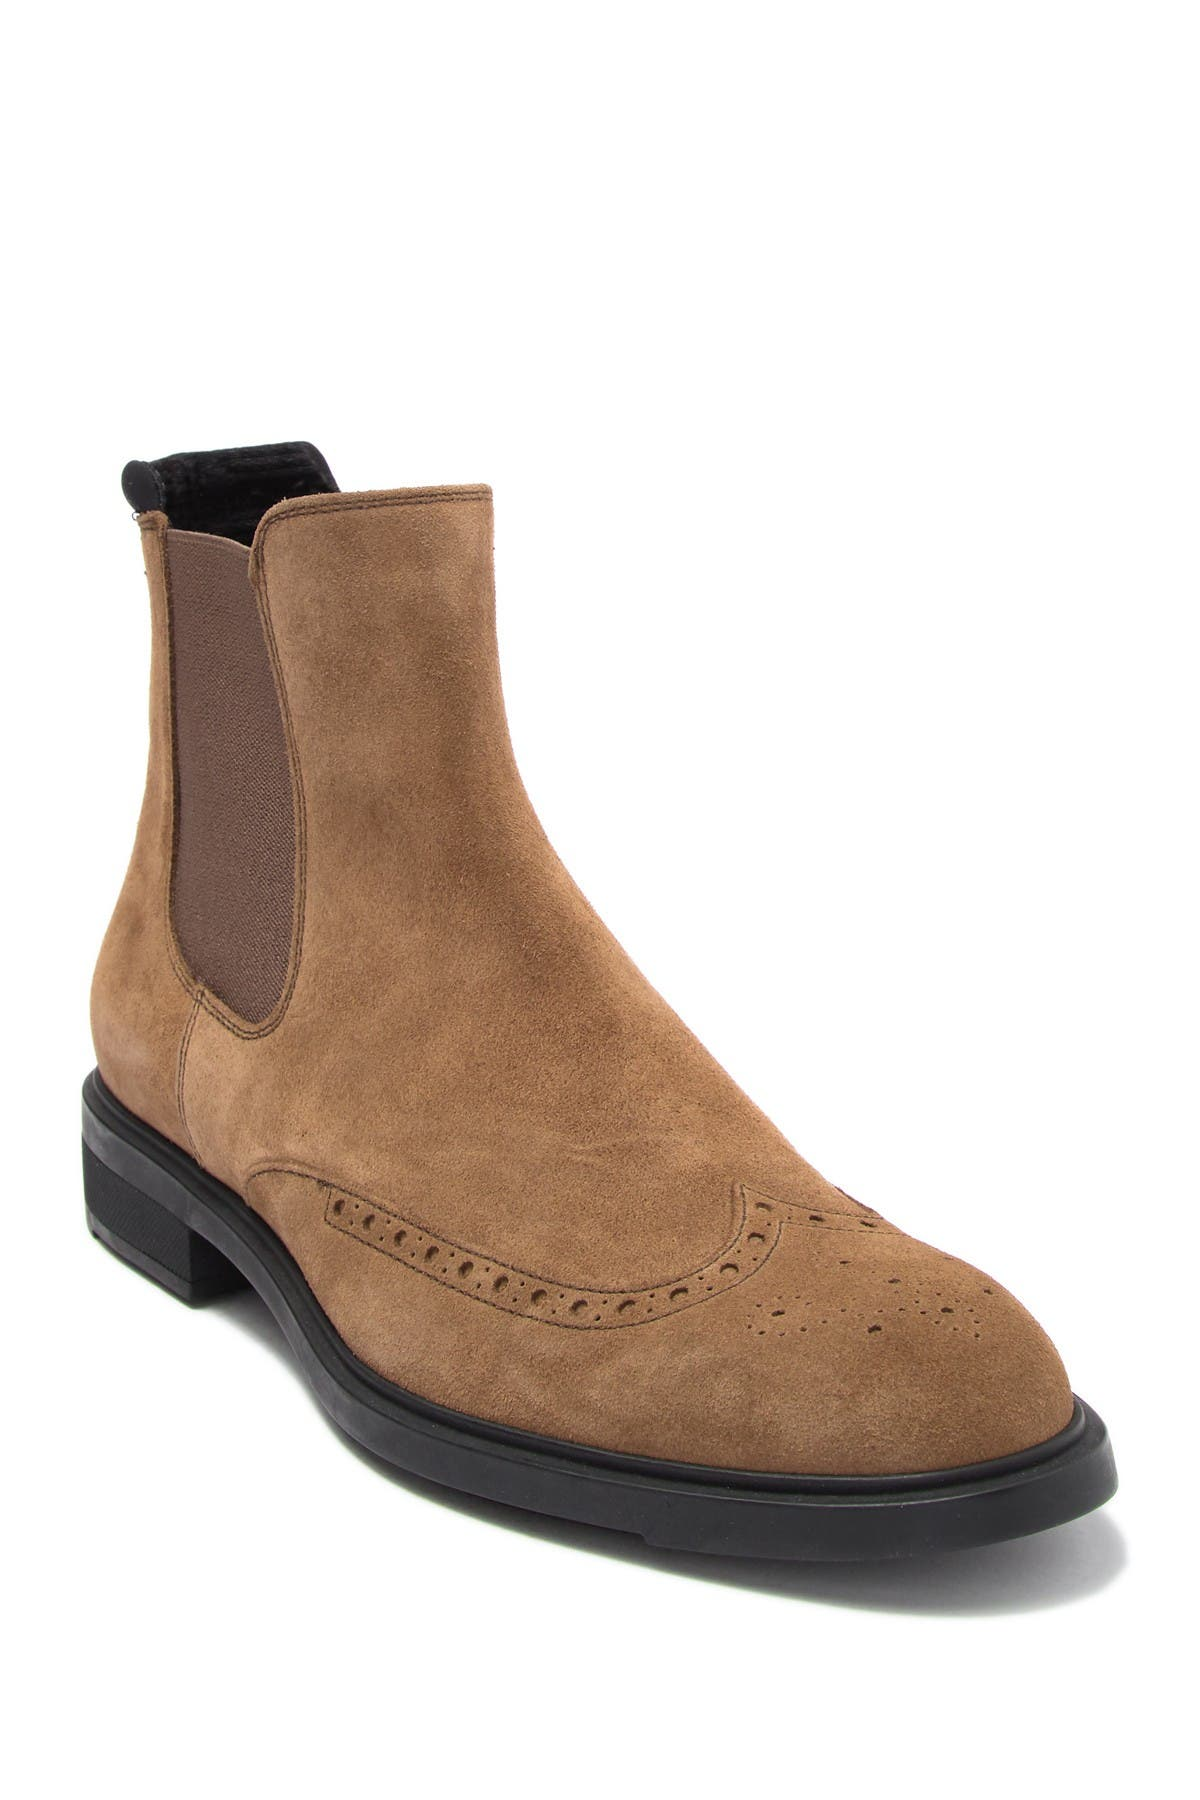 Image of BOSS First Class Suede Chelsea Boot